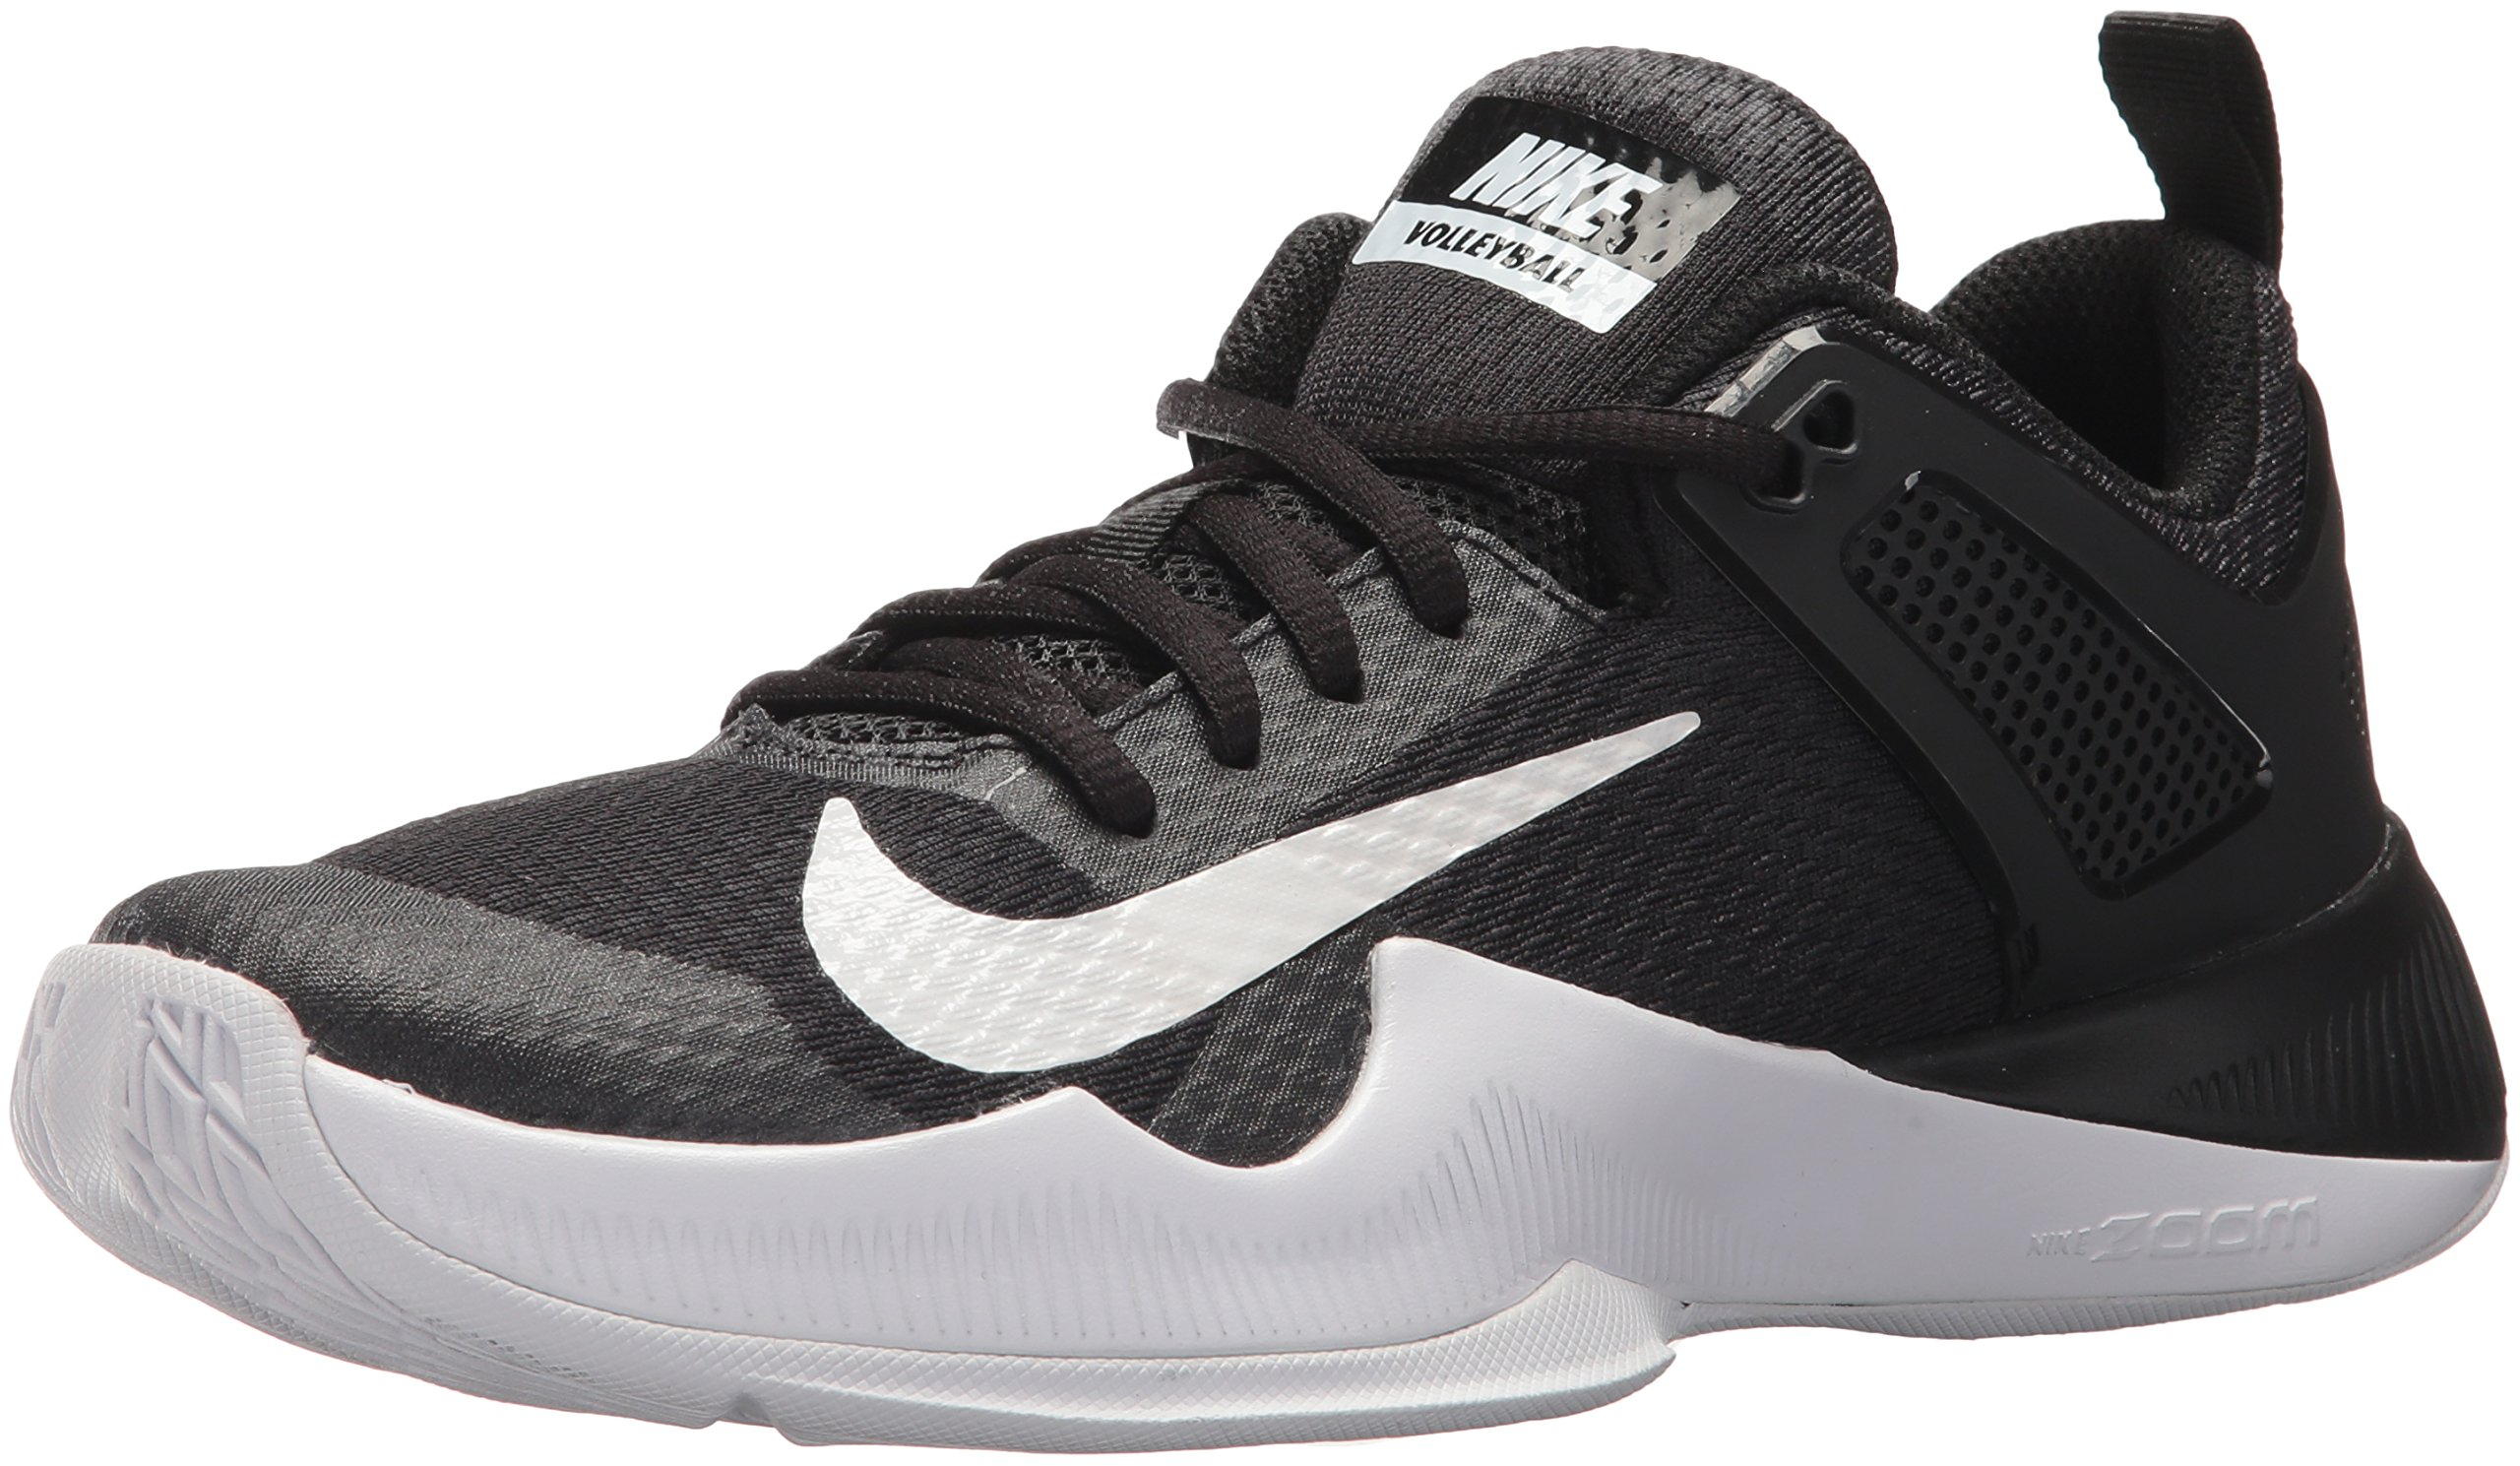 6ddb7d058562 Galleon - Nike Women s Air Zoom Hyperace Volleyball Shoes Black White Size  7 M US